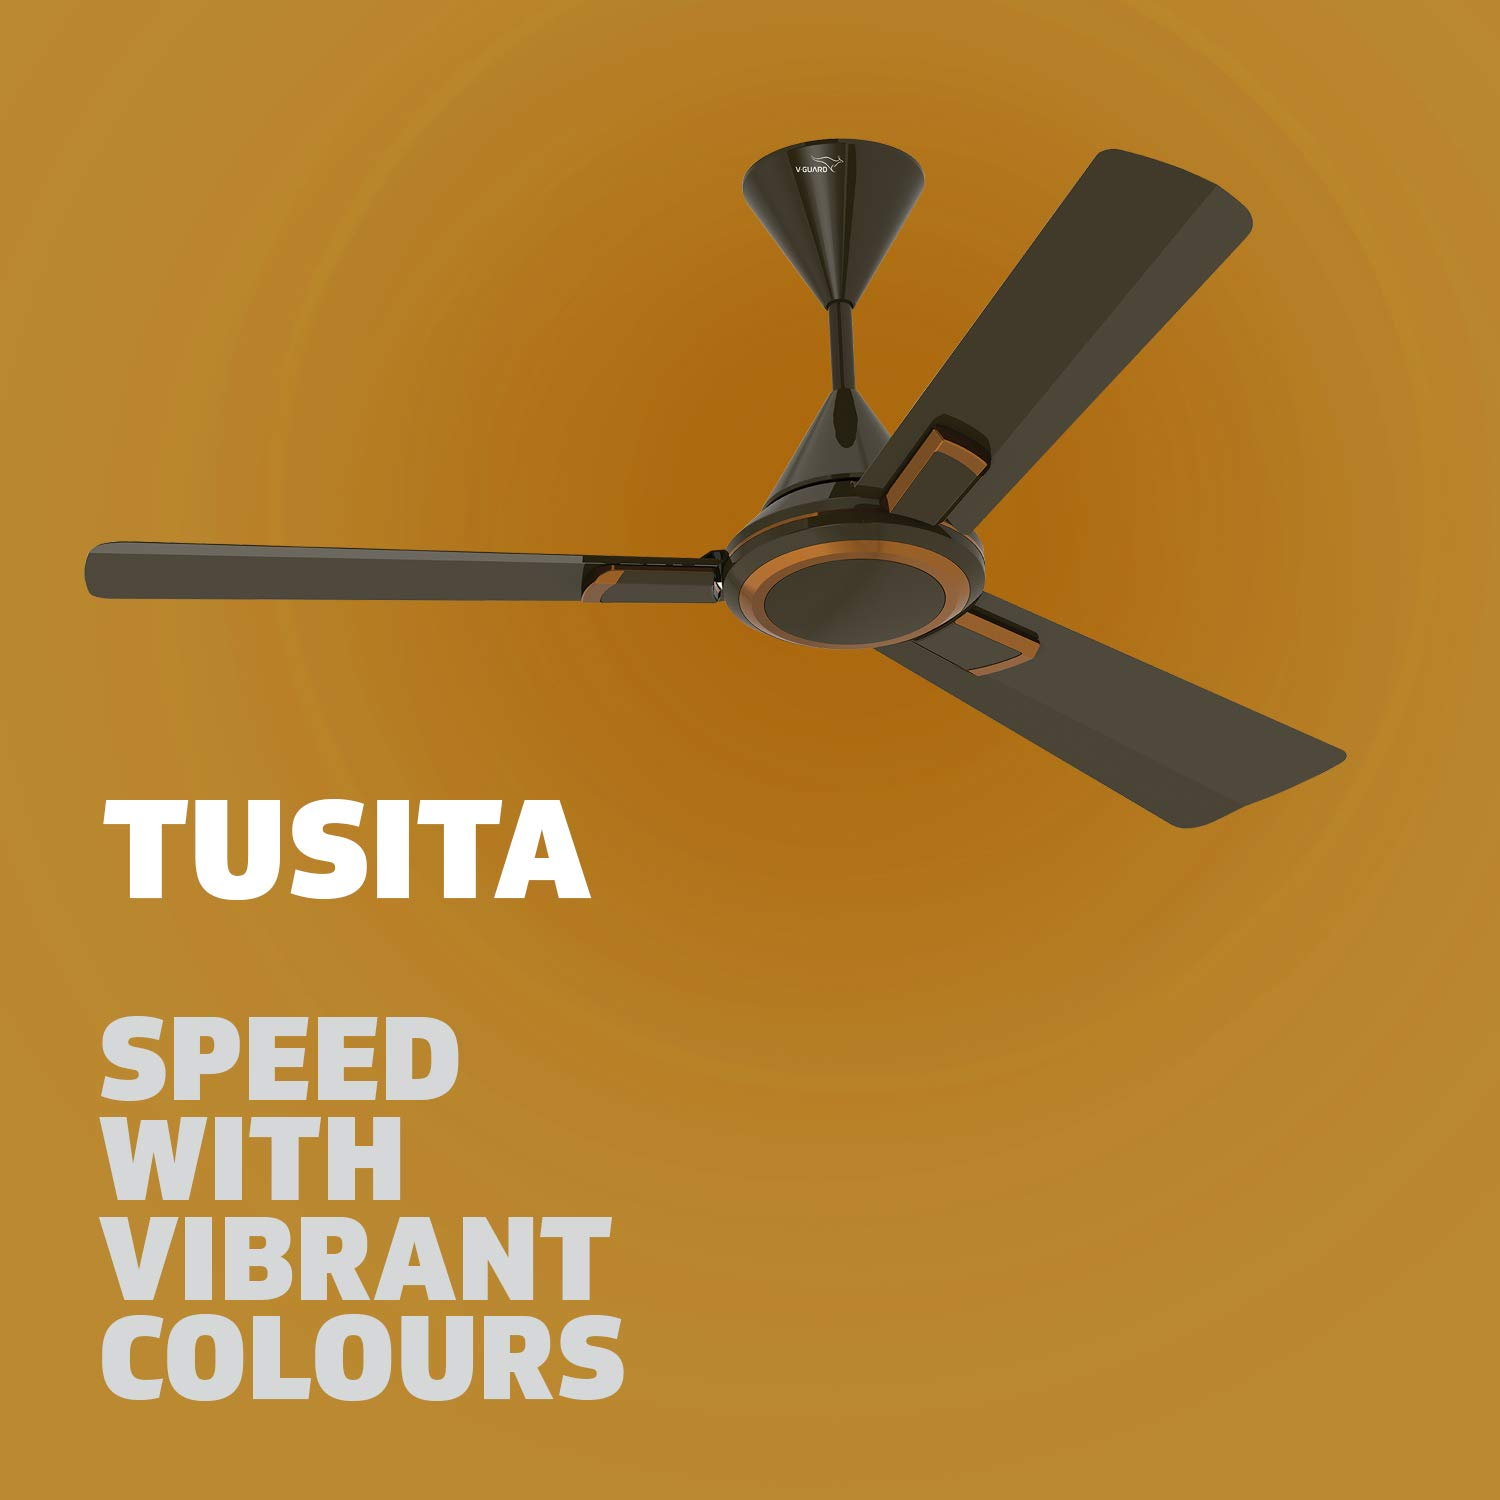 Buy V Guard Ceiling Fan Tusita 1200 Choco Bronze Online At Low Prices In India Amazon In